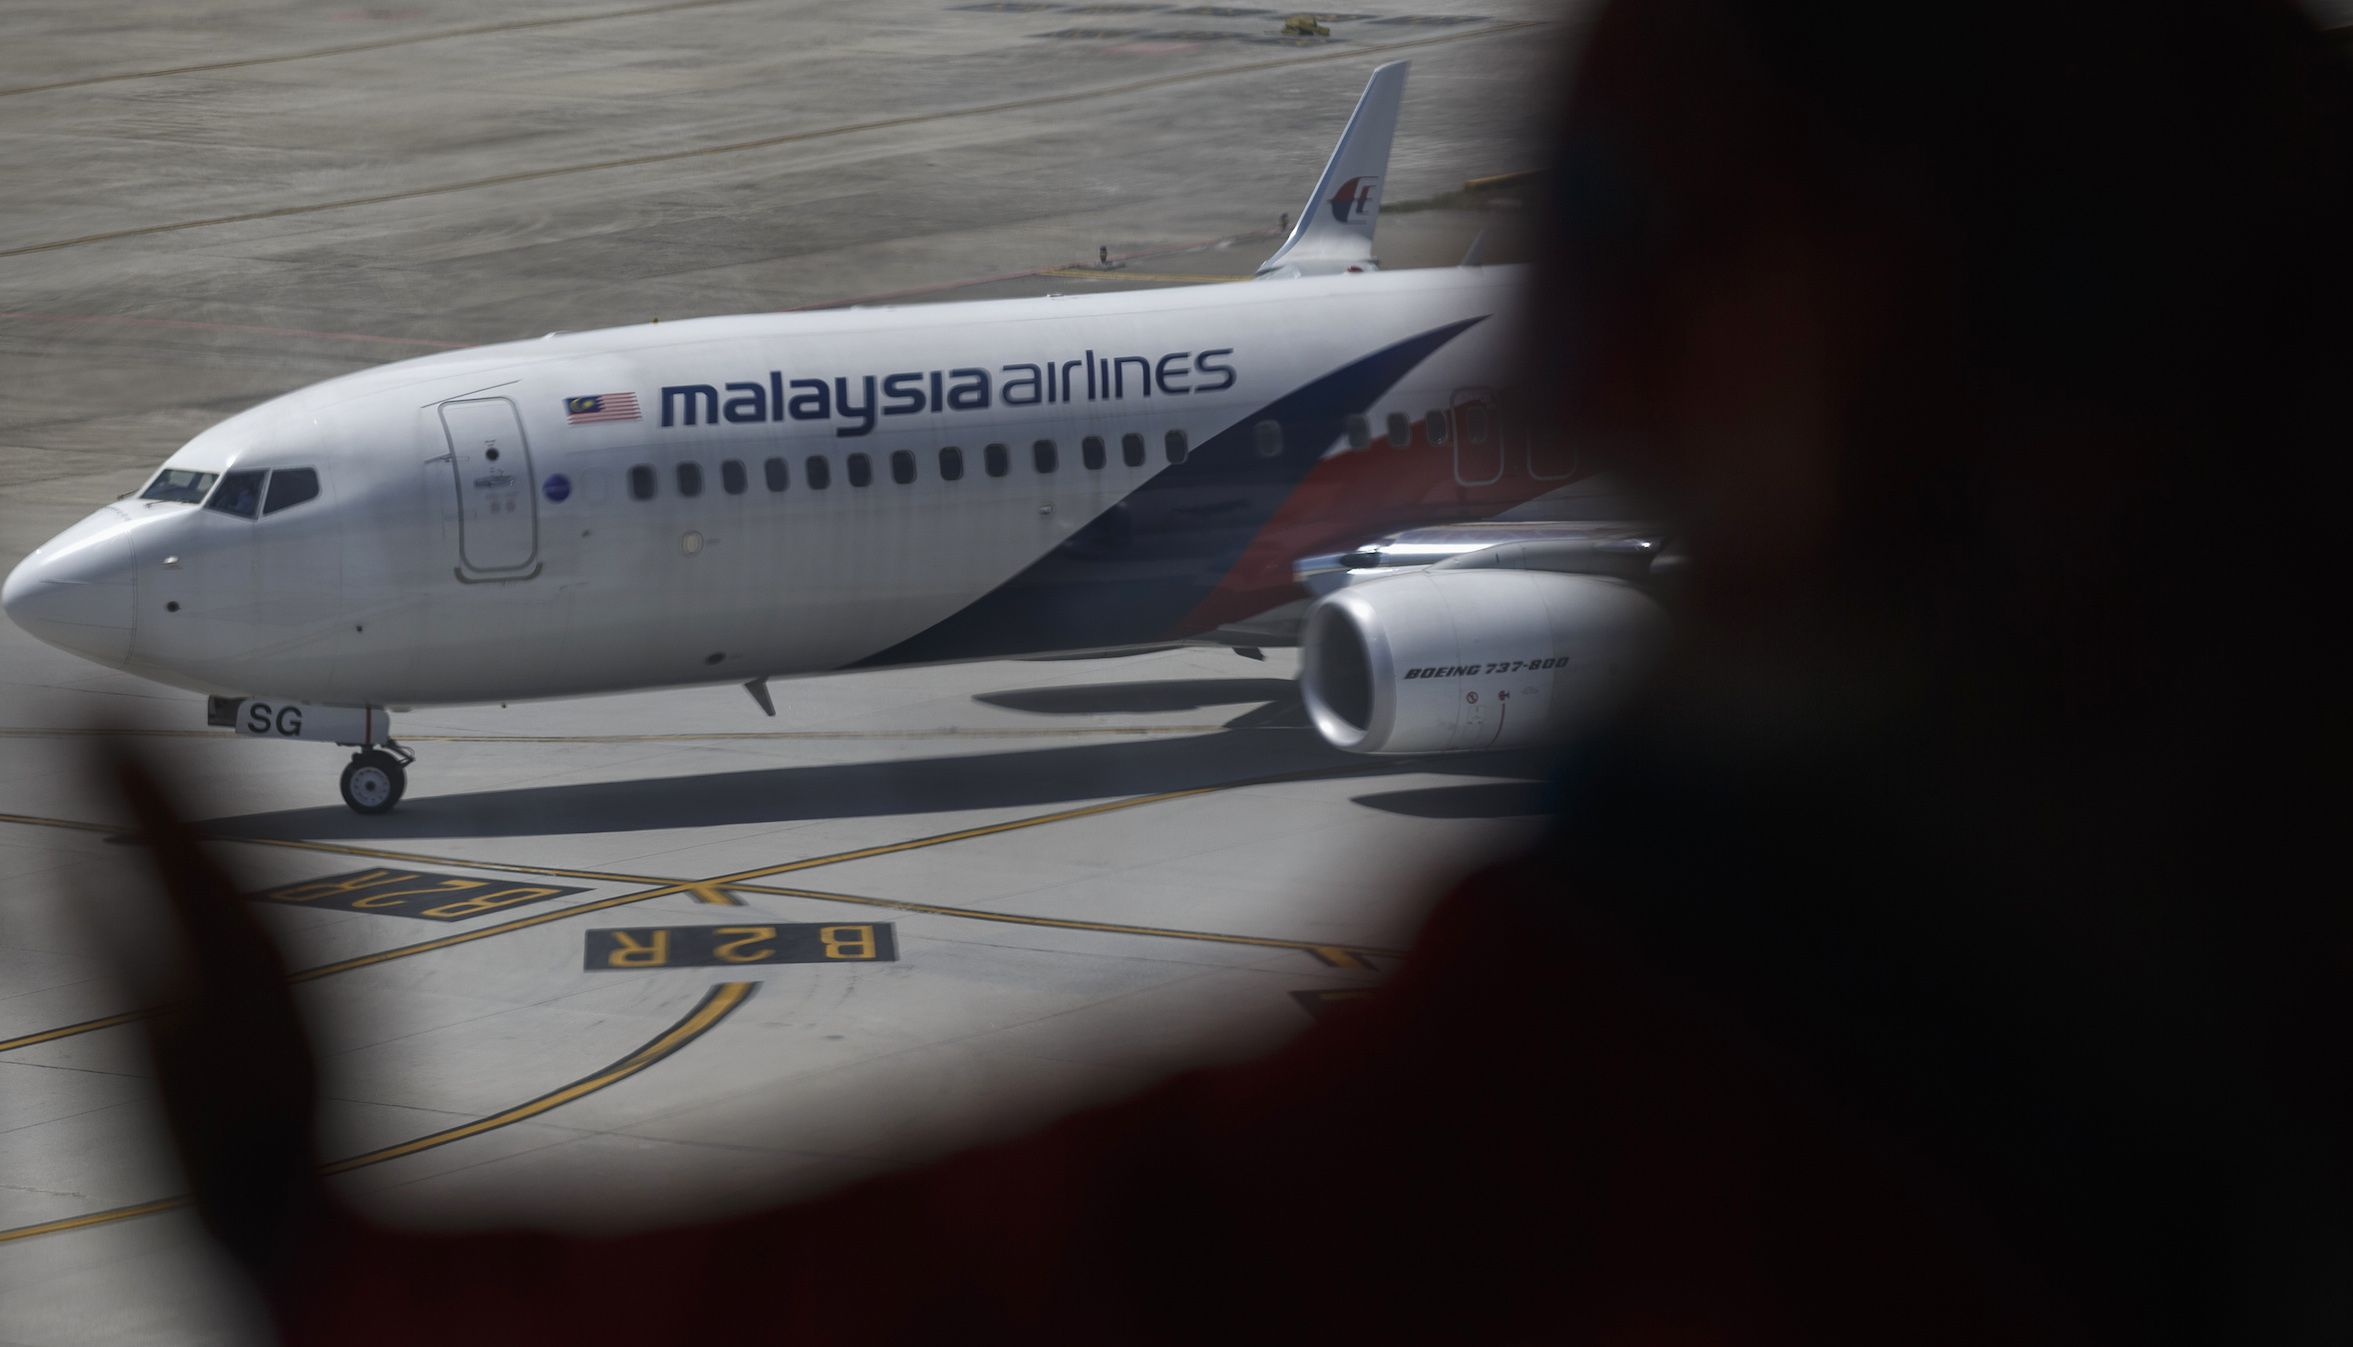 "A woman looks at a Malaysia Airline aircraft sitting on the tarmac at a viewing gallery in Kuala Lumpur International Airport in Sepang July 19, 2014. U.S. President Barack Obama said the downing of a Malaysian jetliner in a Ukrainian region controlled by Russian-backed separatists should be a ""wake-up call for Europe and the world"" in a crisis that appears to be at a turning point and warned Russia of possible tightening of sanctions. While stopping short of blaming Russia for Thursday's crash of Malaysia Airlines Flight MH17, in which 298 people died, Obama accused Moscow of failing to stop the violence that made it possible to shoot down the plane. REUTERS/Athit Perawongmetha (MALAYSIA - Tags: TRANSPORT DISASTER) - RTR3ZAXZ"